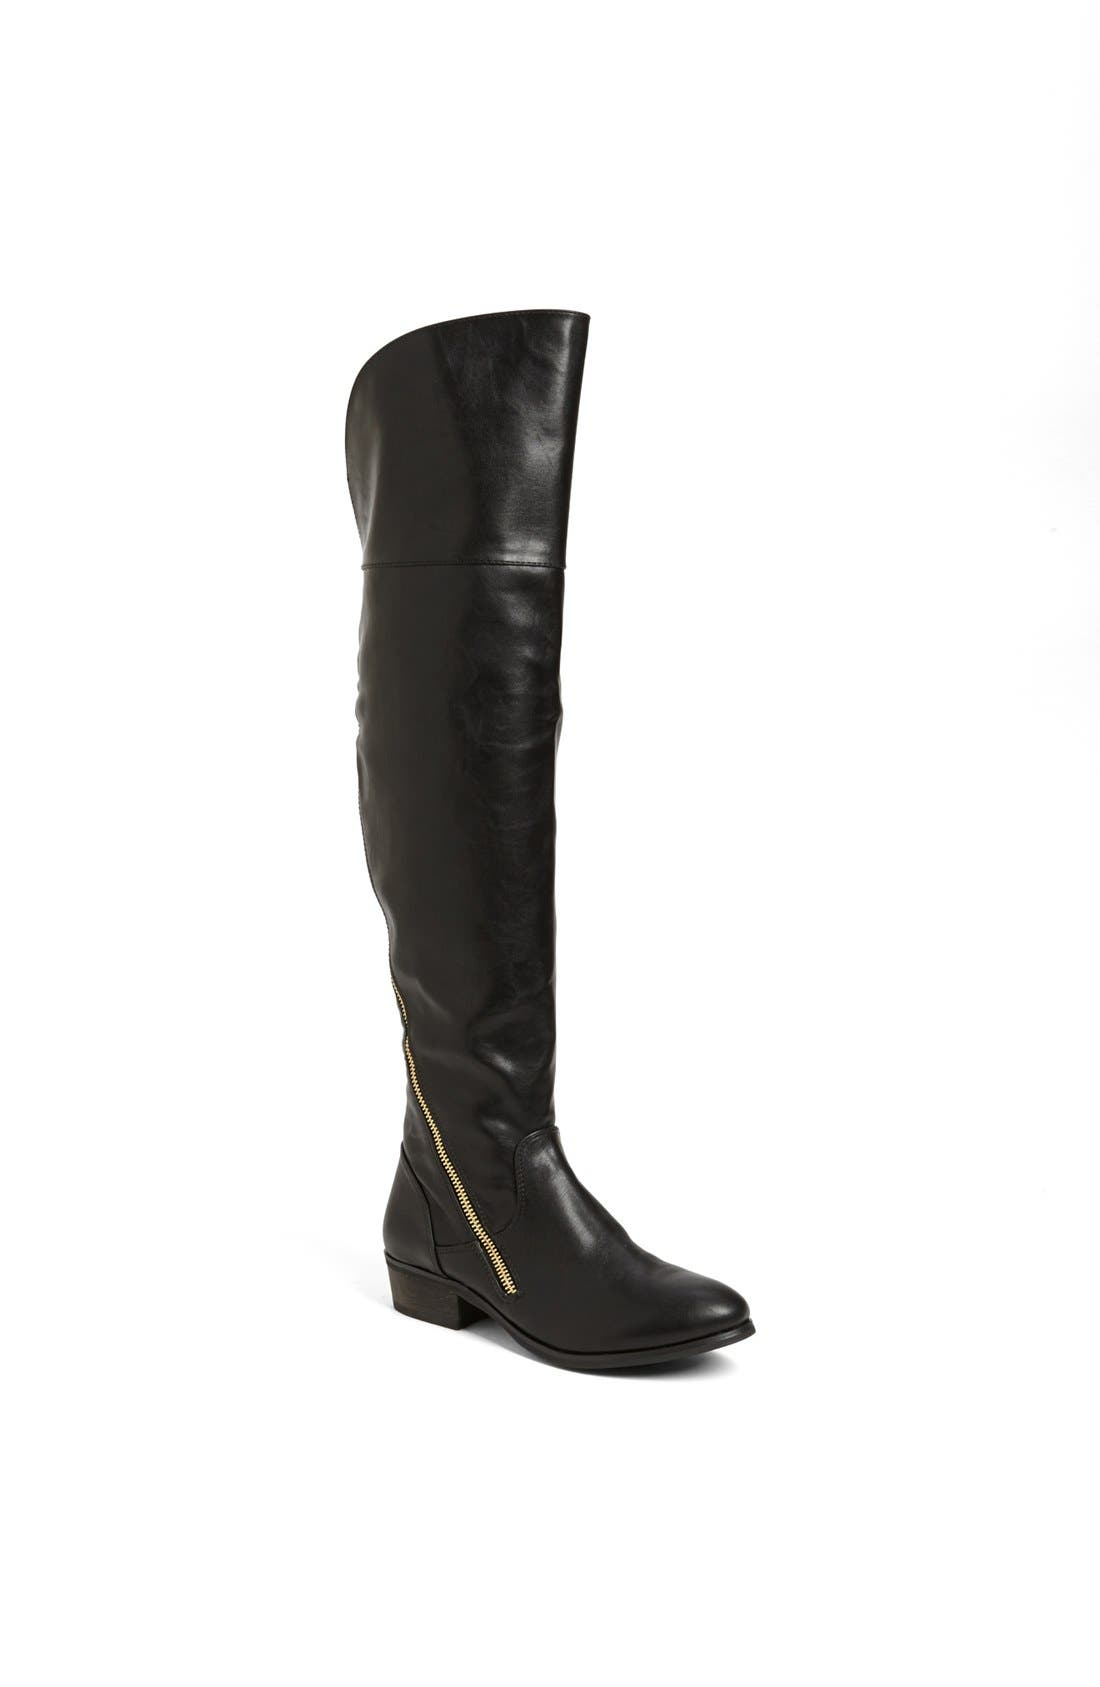 Alternate Image 1 Selected - REPORT Signature 'Gwyn' Over the Knee Boot